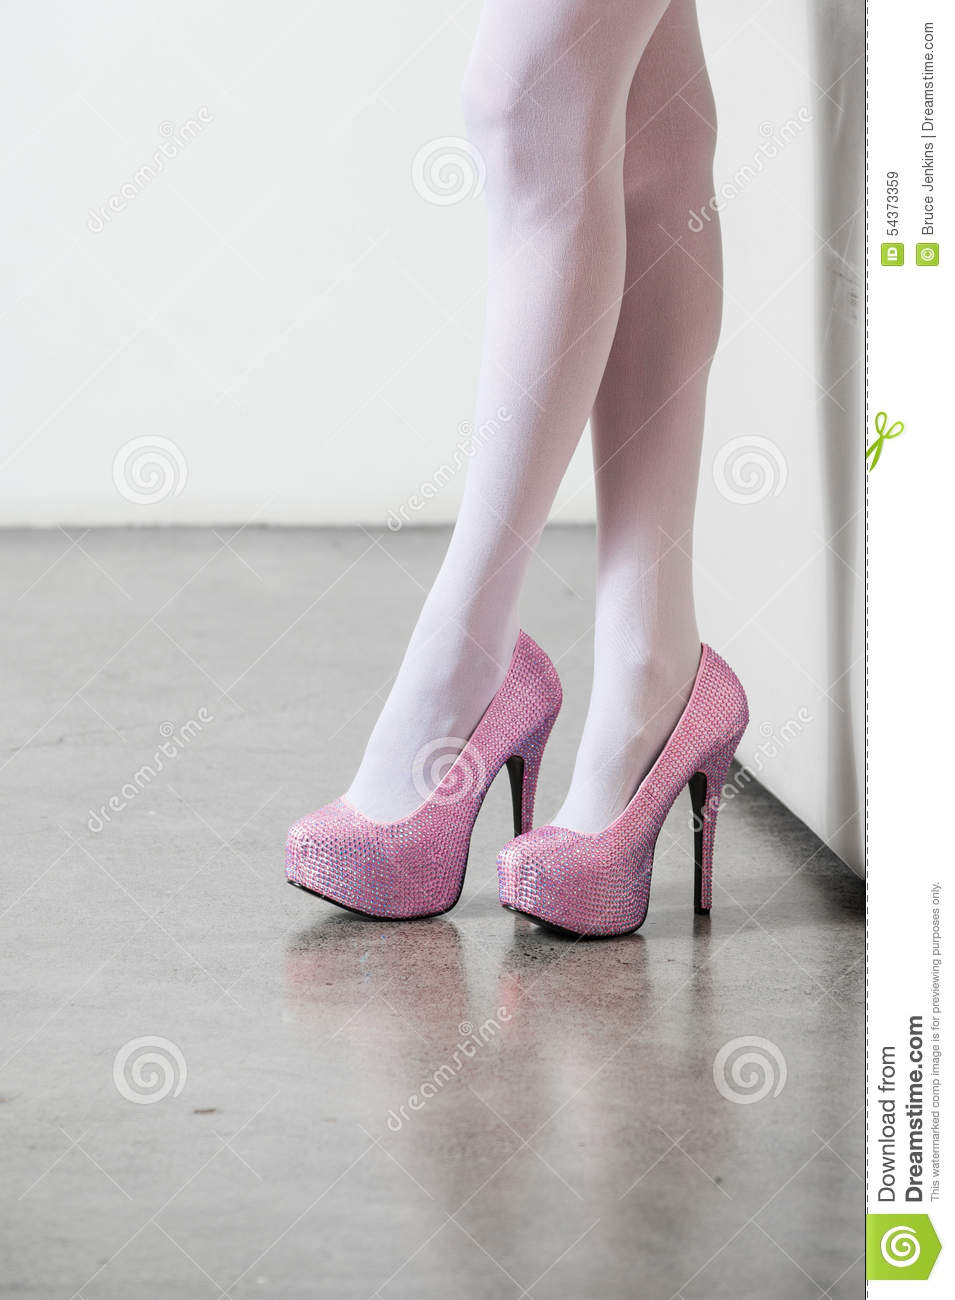 07e9677400db Ladies legs in white stockings and a pair of pink sparkly stiletto high heel  shoes